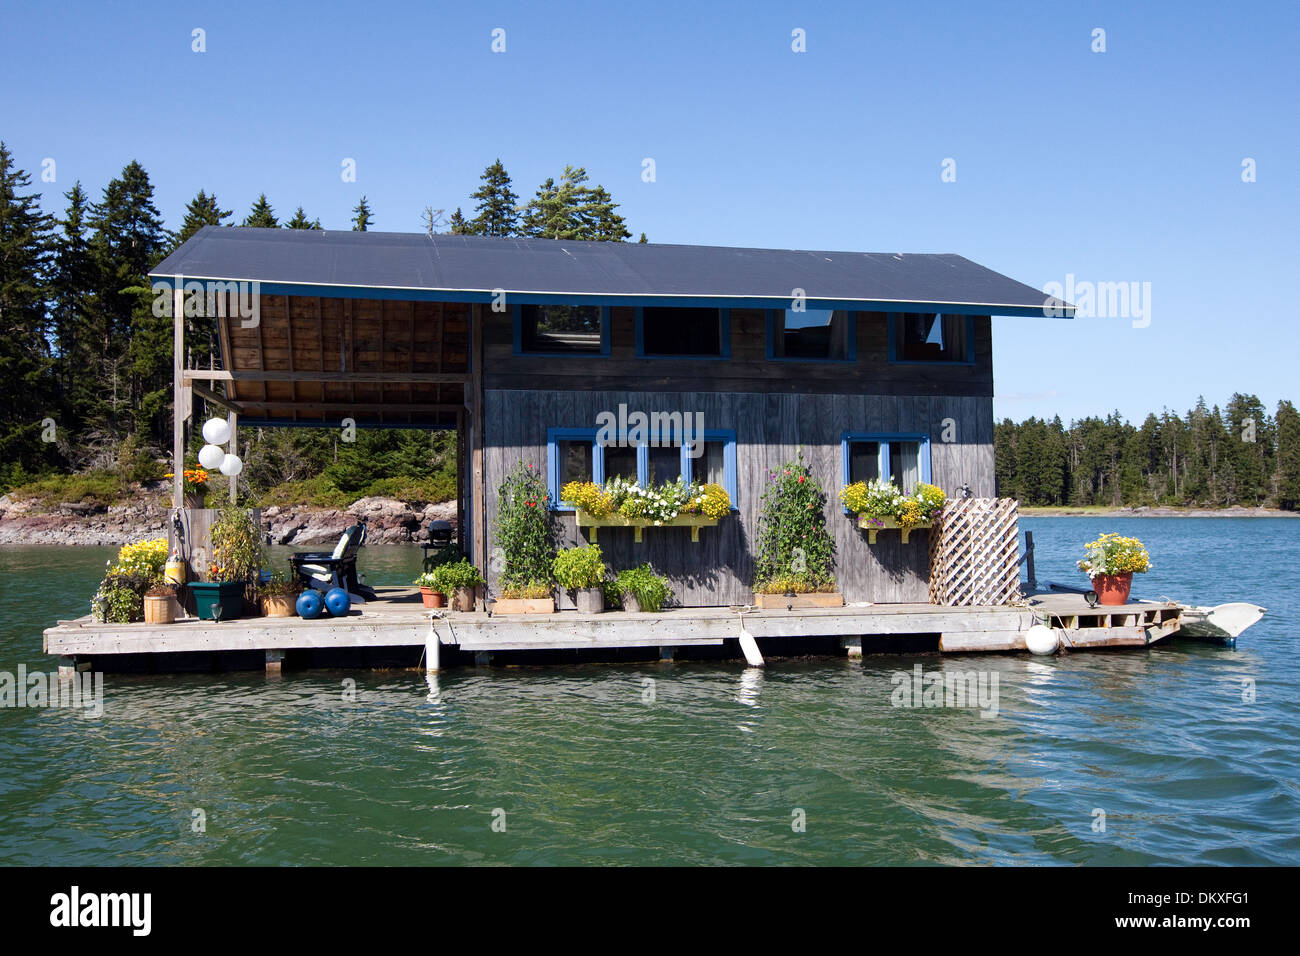 Adorable casa flotante, Perry Creek, Vinalhaven, Maine Imagen De Stock